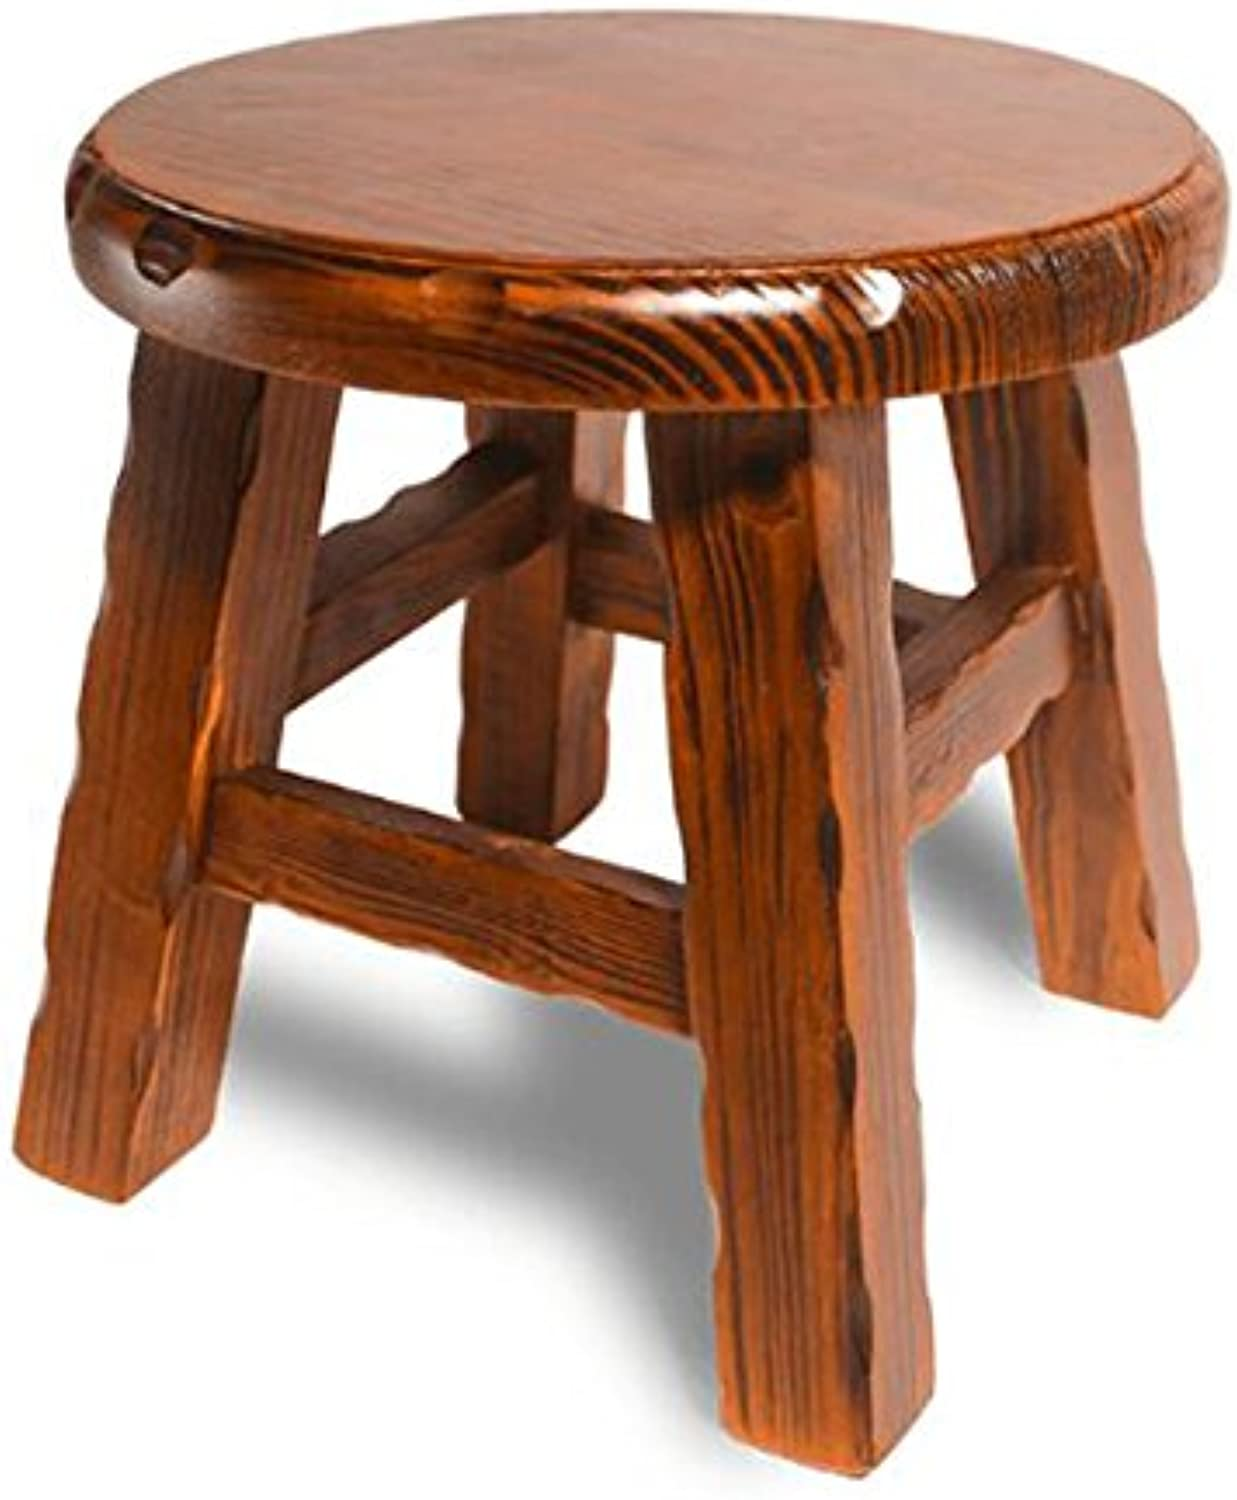 Solid Wood Small Round Stool Simple Small Stool Home Stool Fashion shoes Stool Small Wooden Stool -by TIANTA